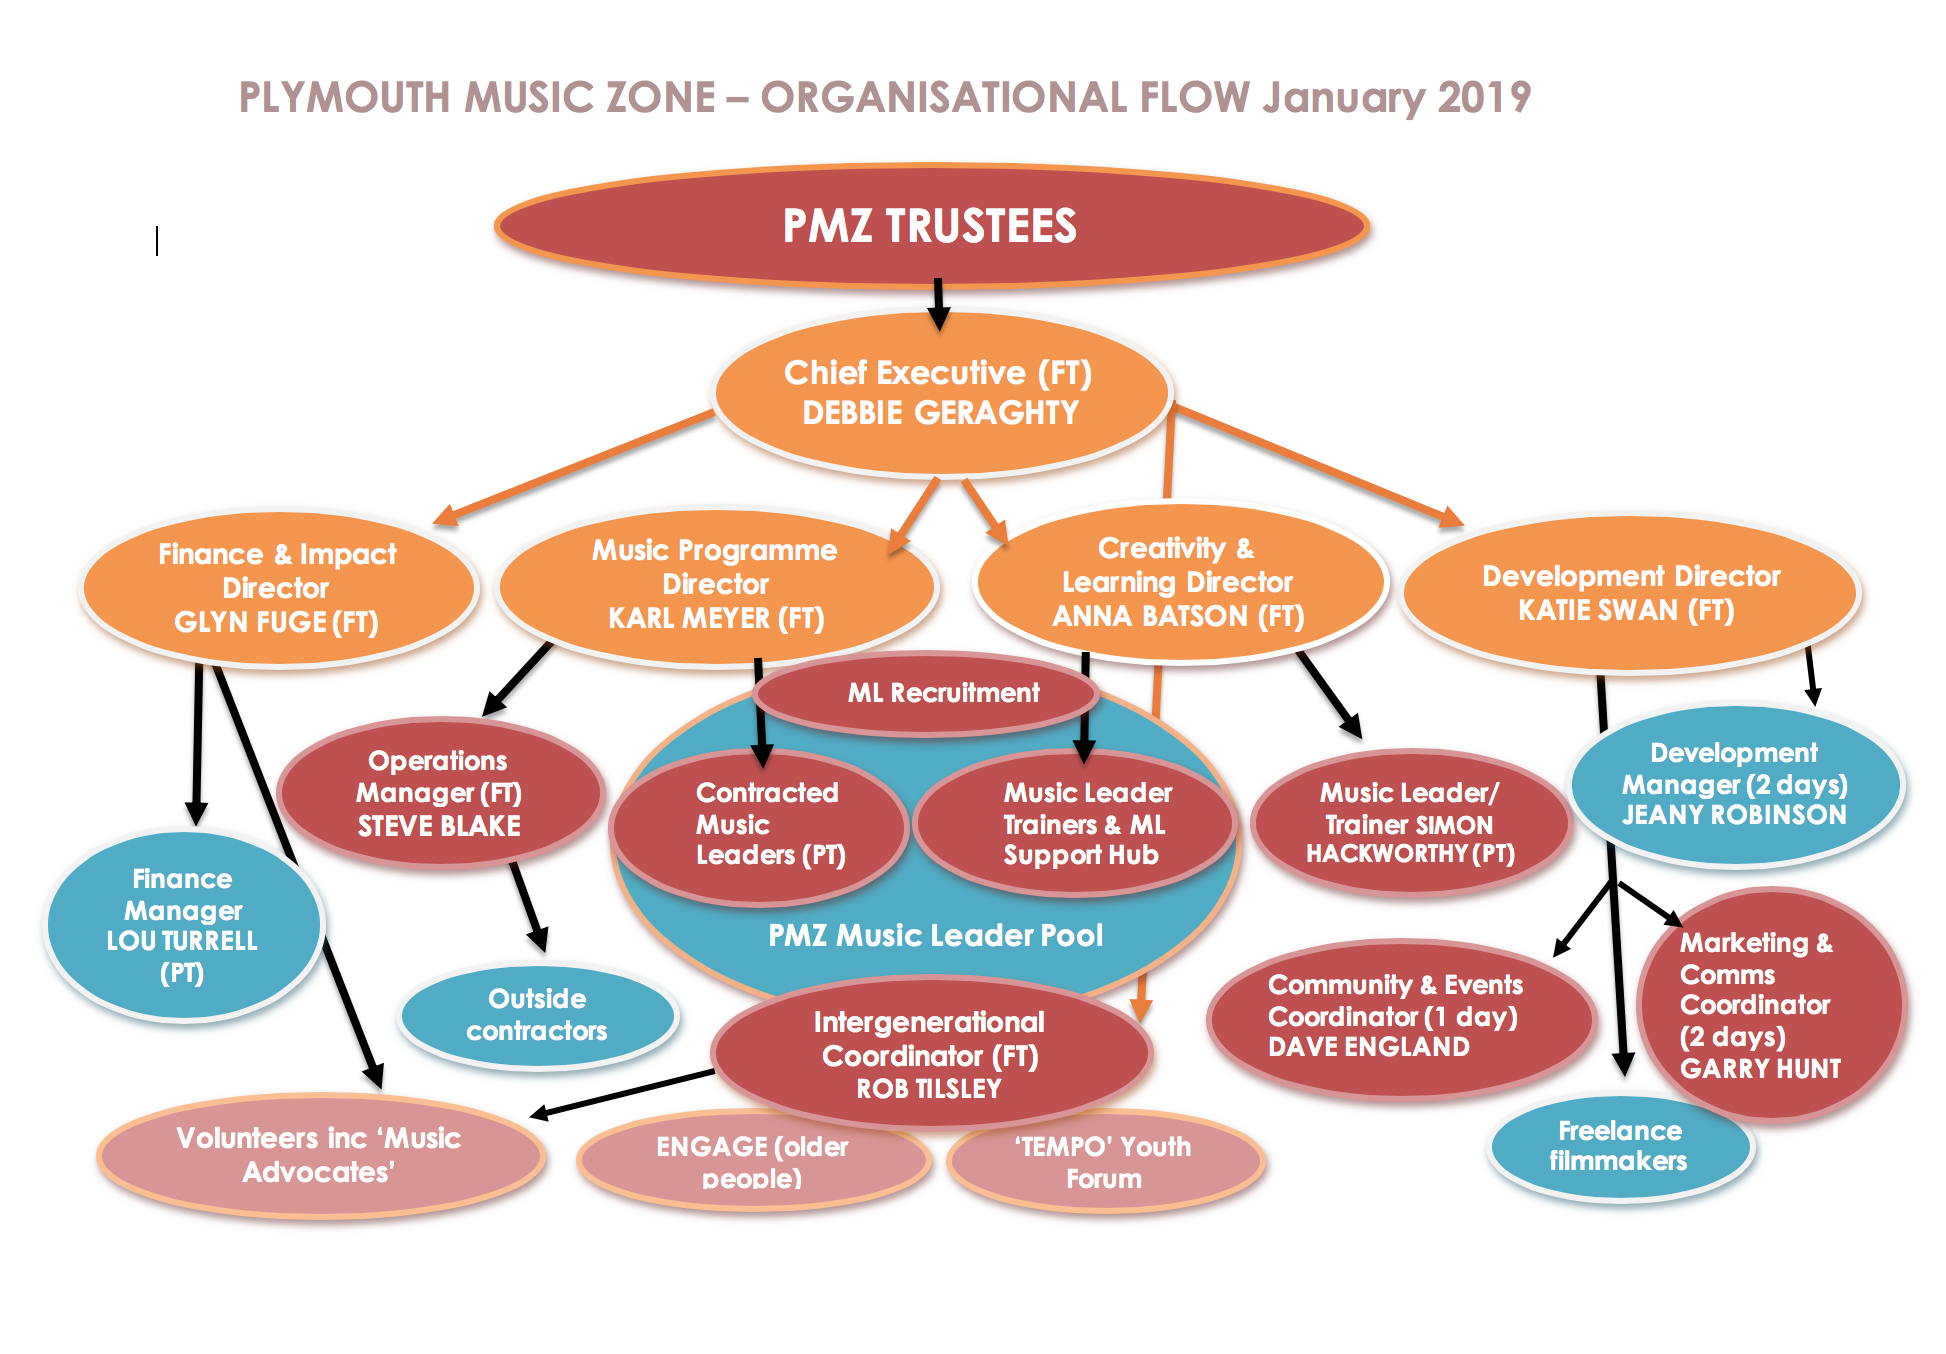 Organisational flow chart for PMZ January 2019